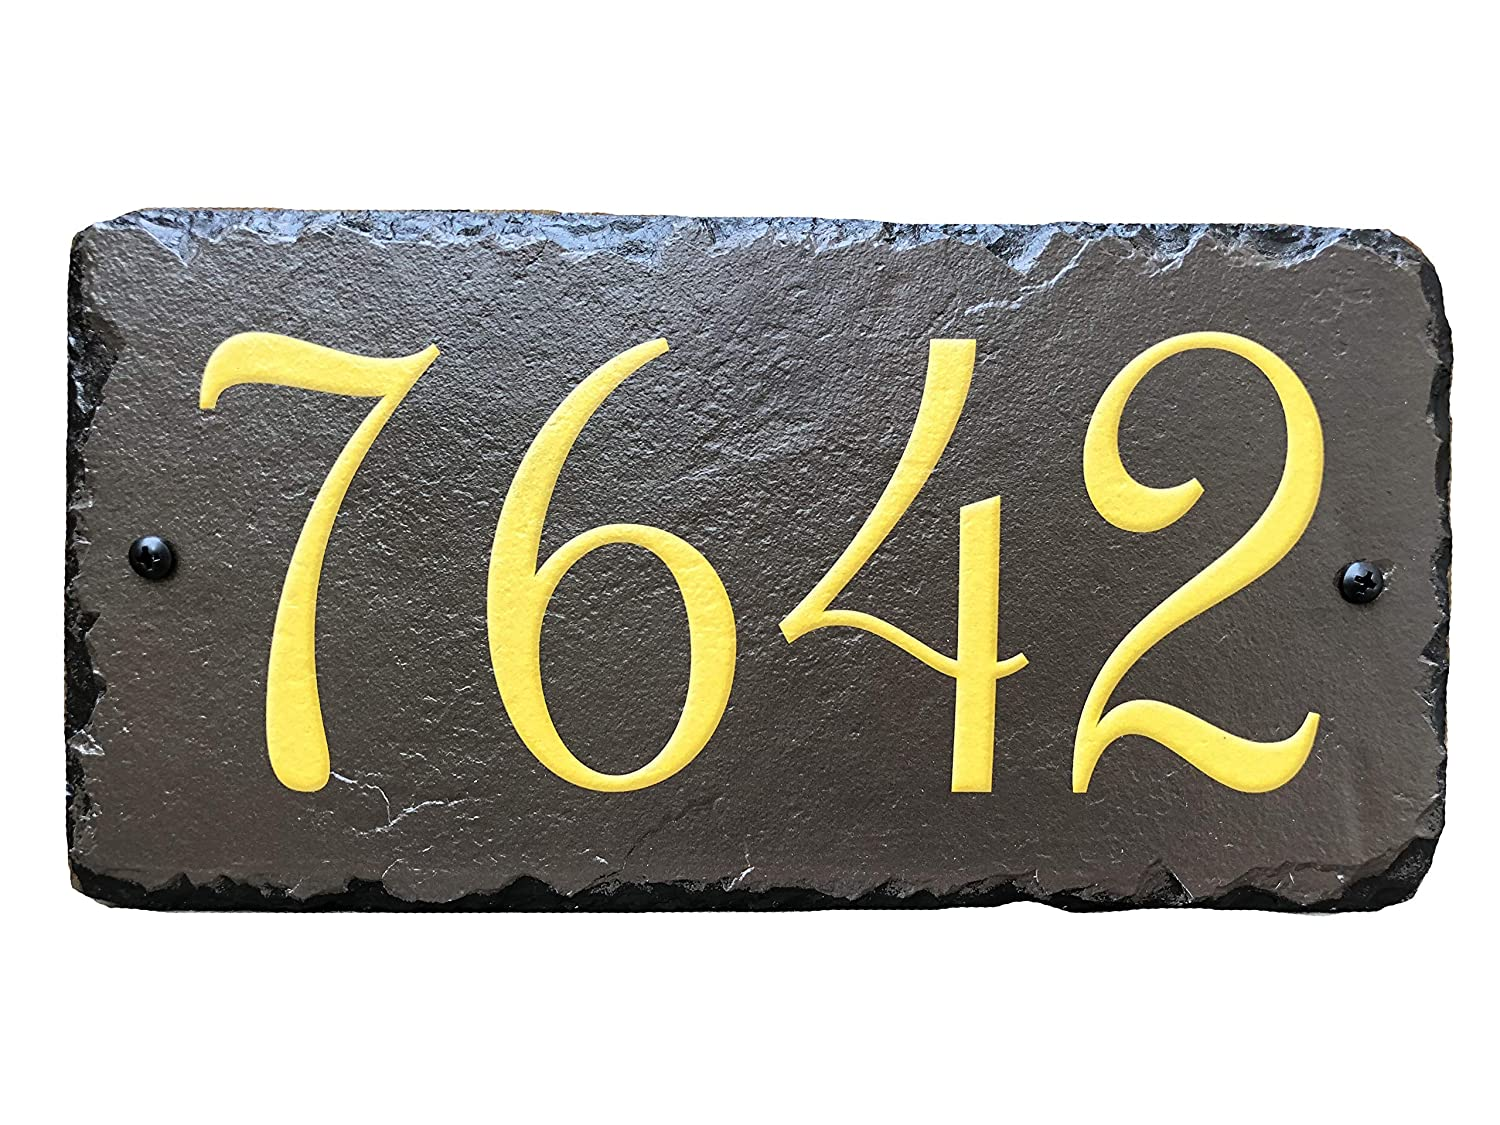 Sassy Squirrel Handcrafted and Customizable Slate Home Address Plaque Gold/Silver on Brown (12x6) Sassy Squirrel Ink 5355925225174